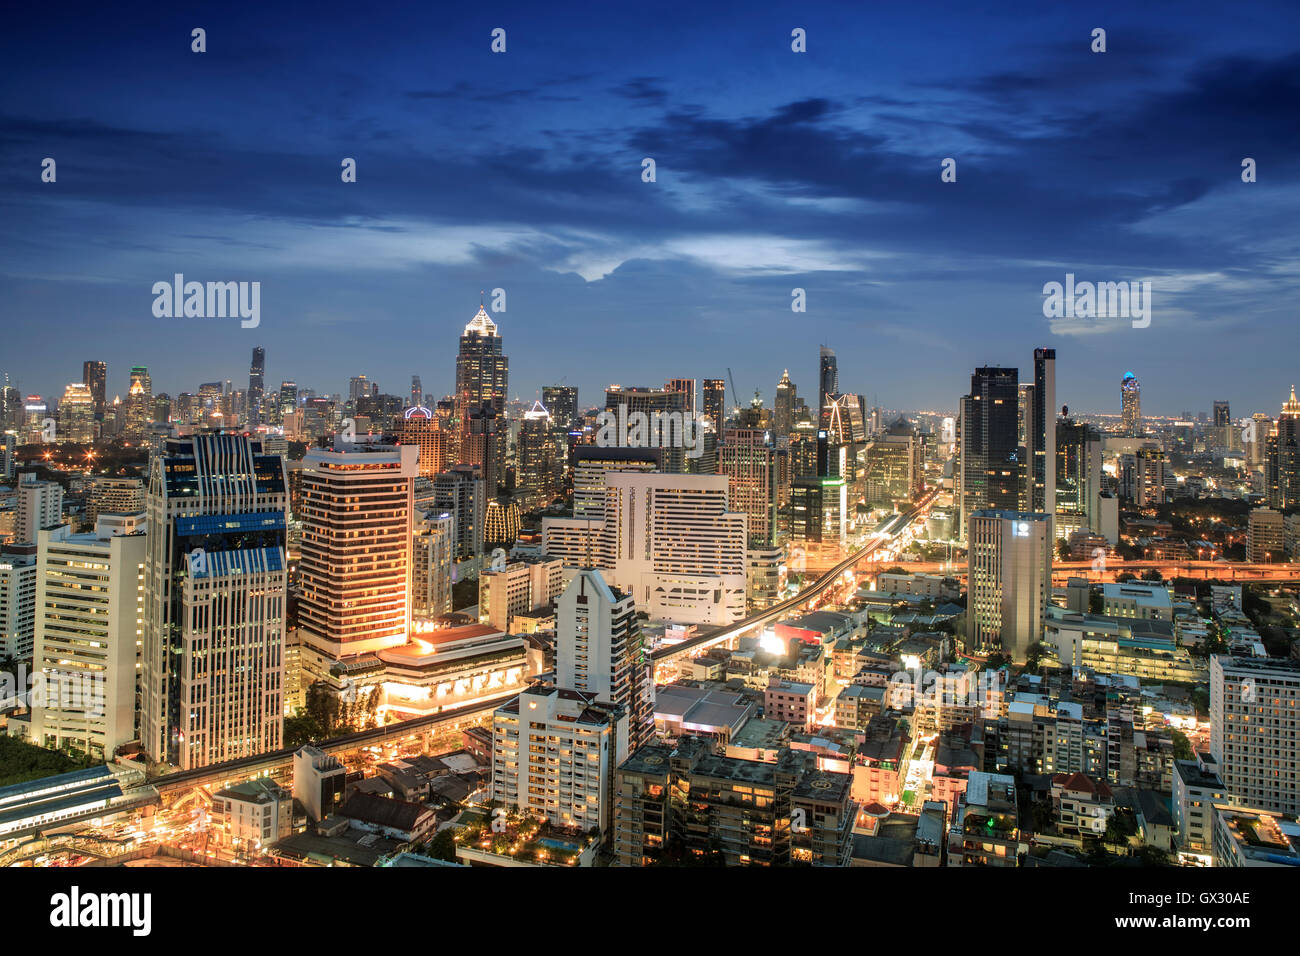 Bangkok city skyline at night - Skytrain train line & main tourist area around Sukhumvit showing Chit Lom and - Stock Image